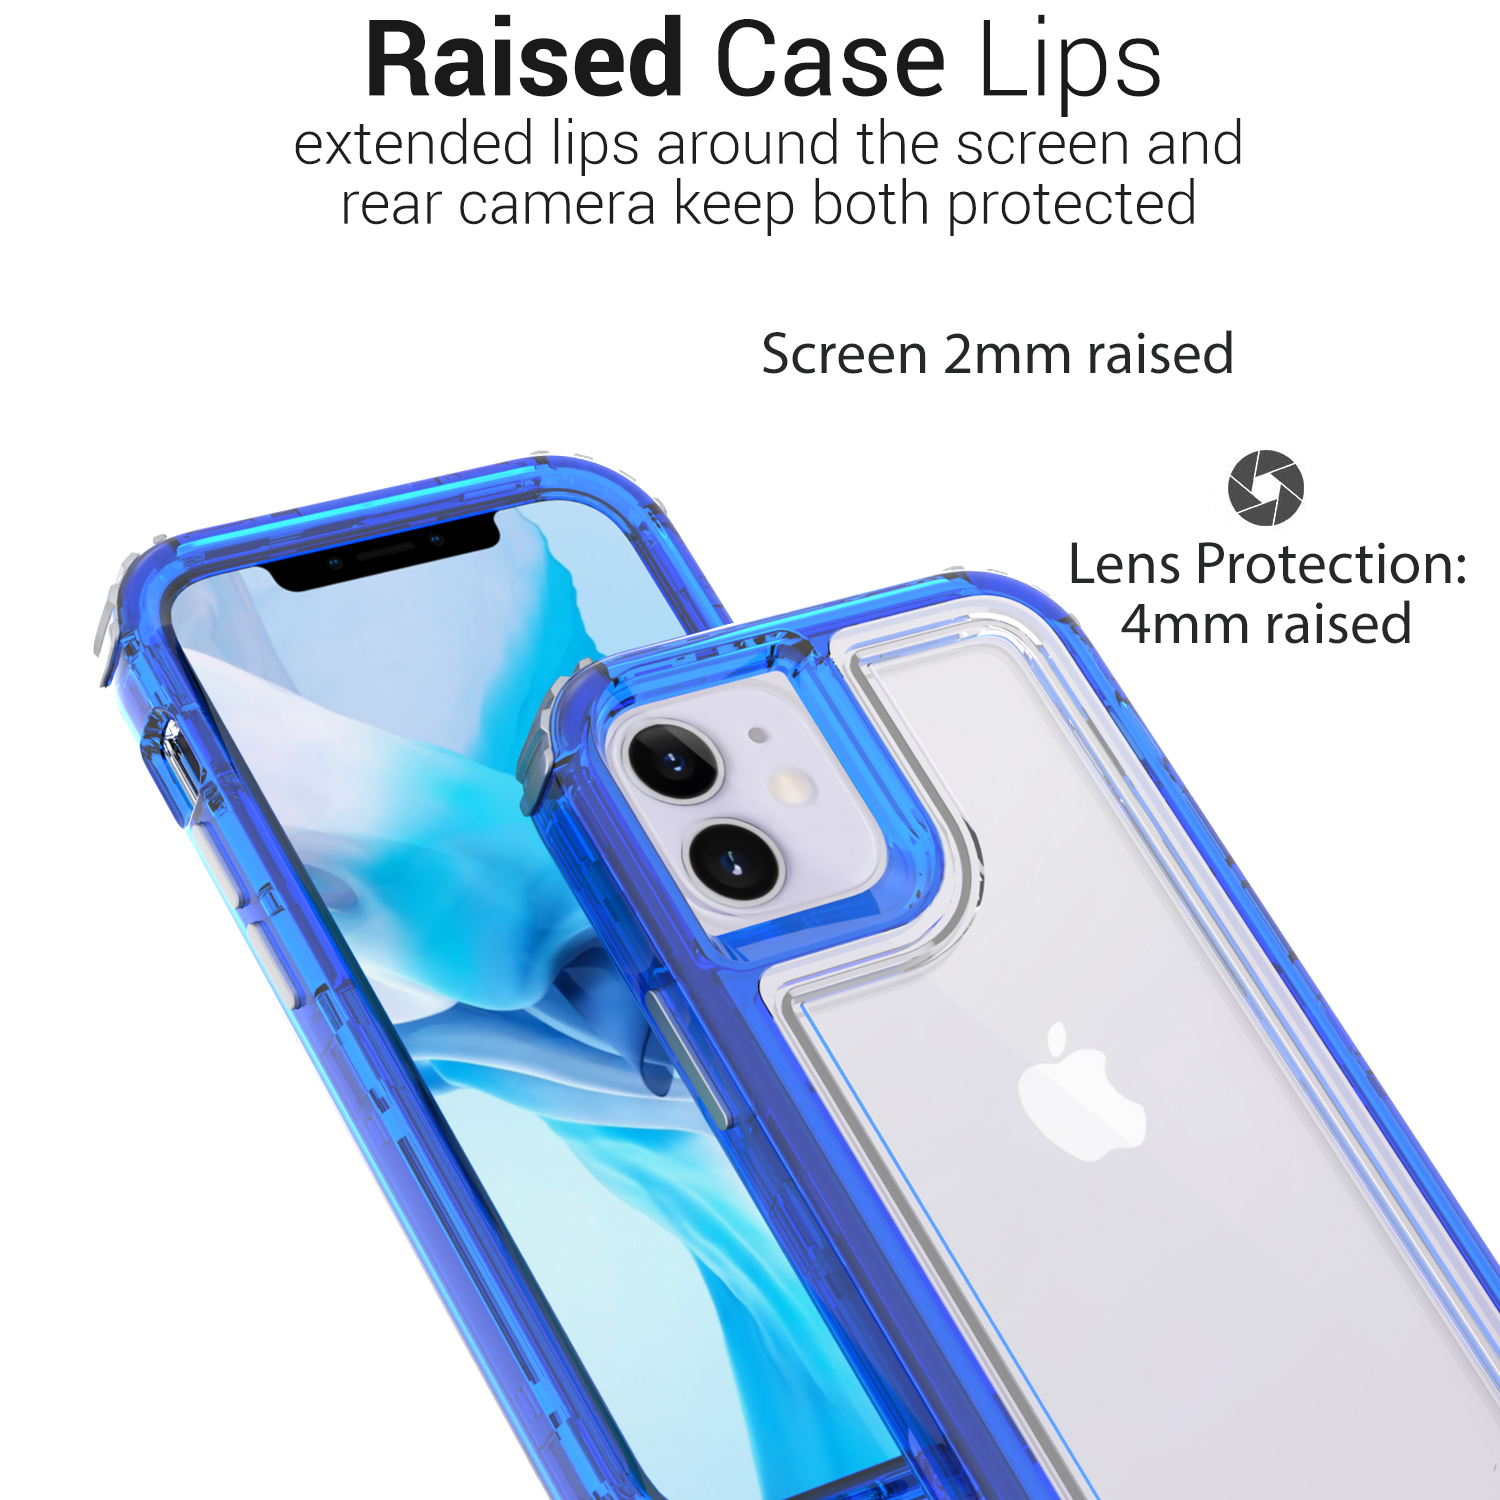 7 Best Samsung Galaxy S8 Cases With Card Holder